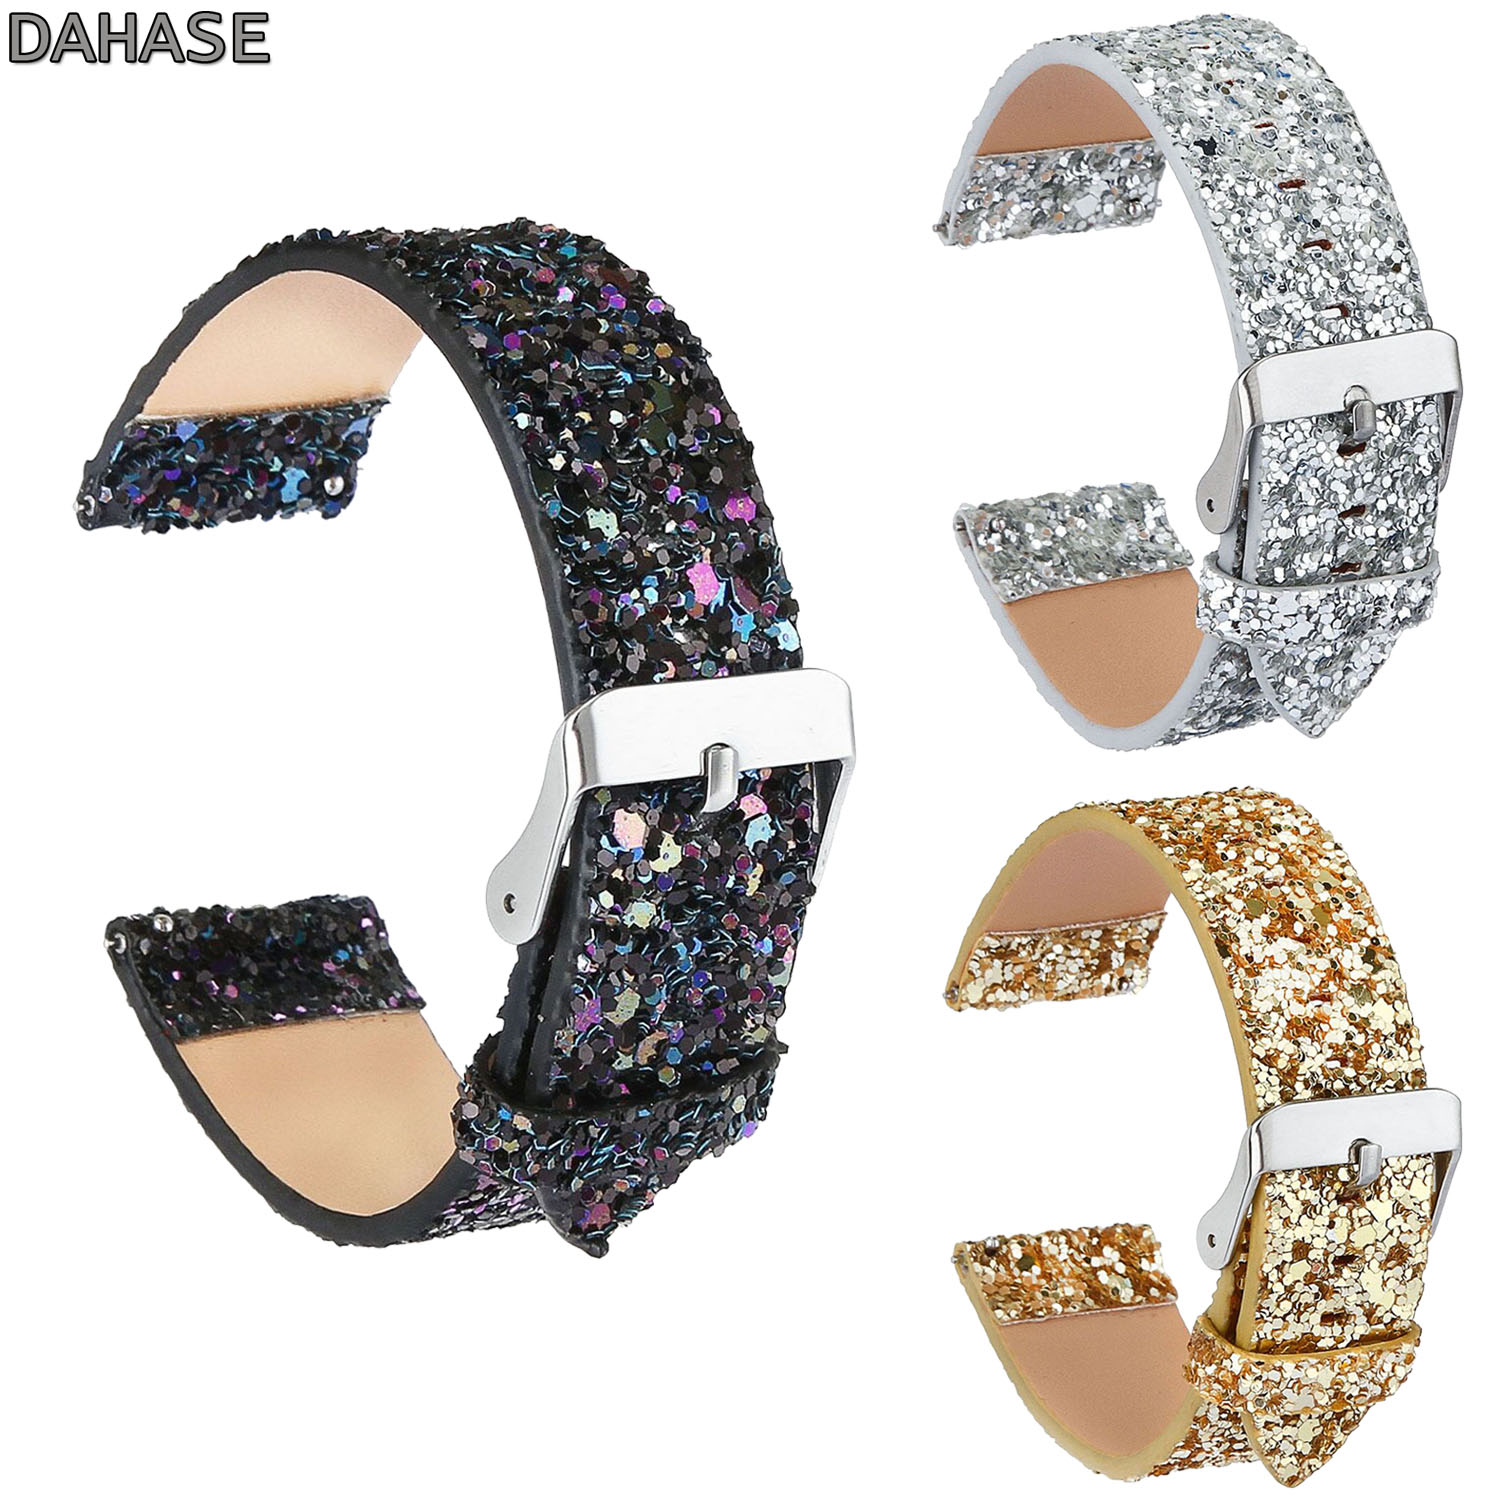 DAHASE Bling Christmas Shiny Glitter Leather Watchband for Samsung Gear S3 Frontier Strap Bracelet for Gear S3 Classic Band 22mm 22mm sports silicone strap for samsung gear s3 frontier band for gear s3 classic rubber watchband replacement wristband